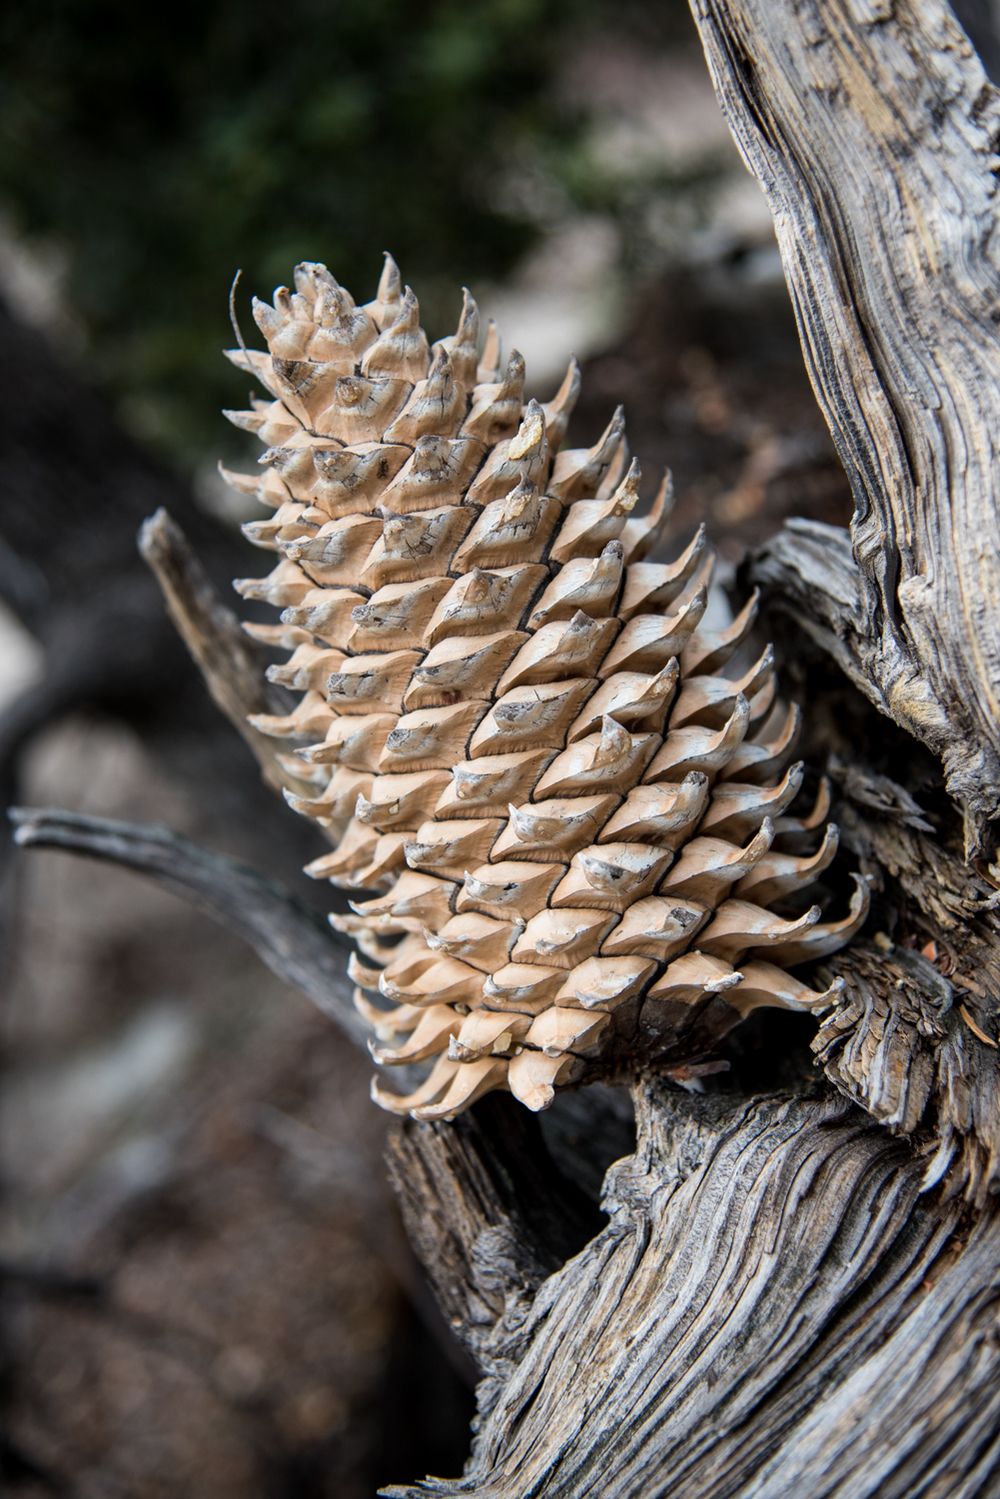 Massive pine cones come from massive trees!